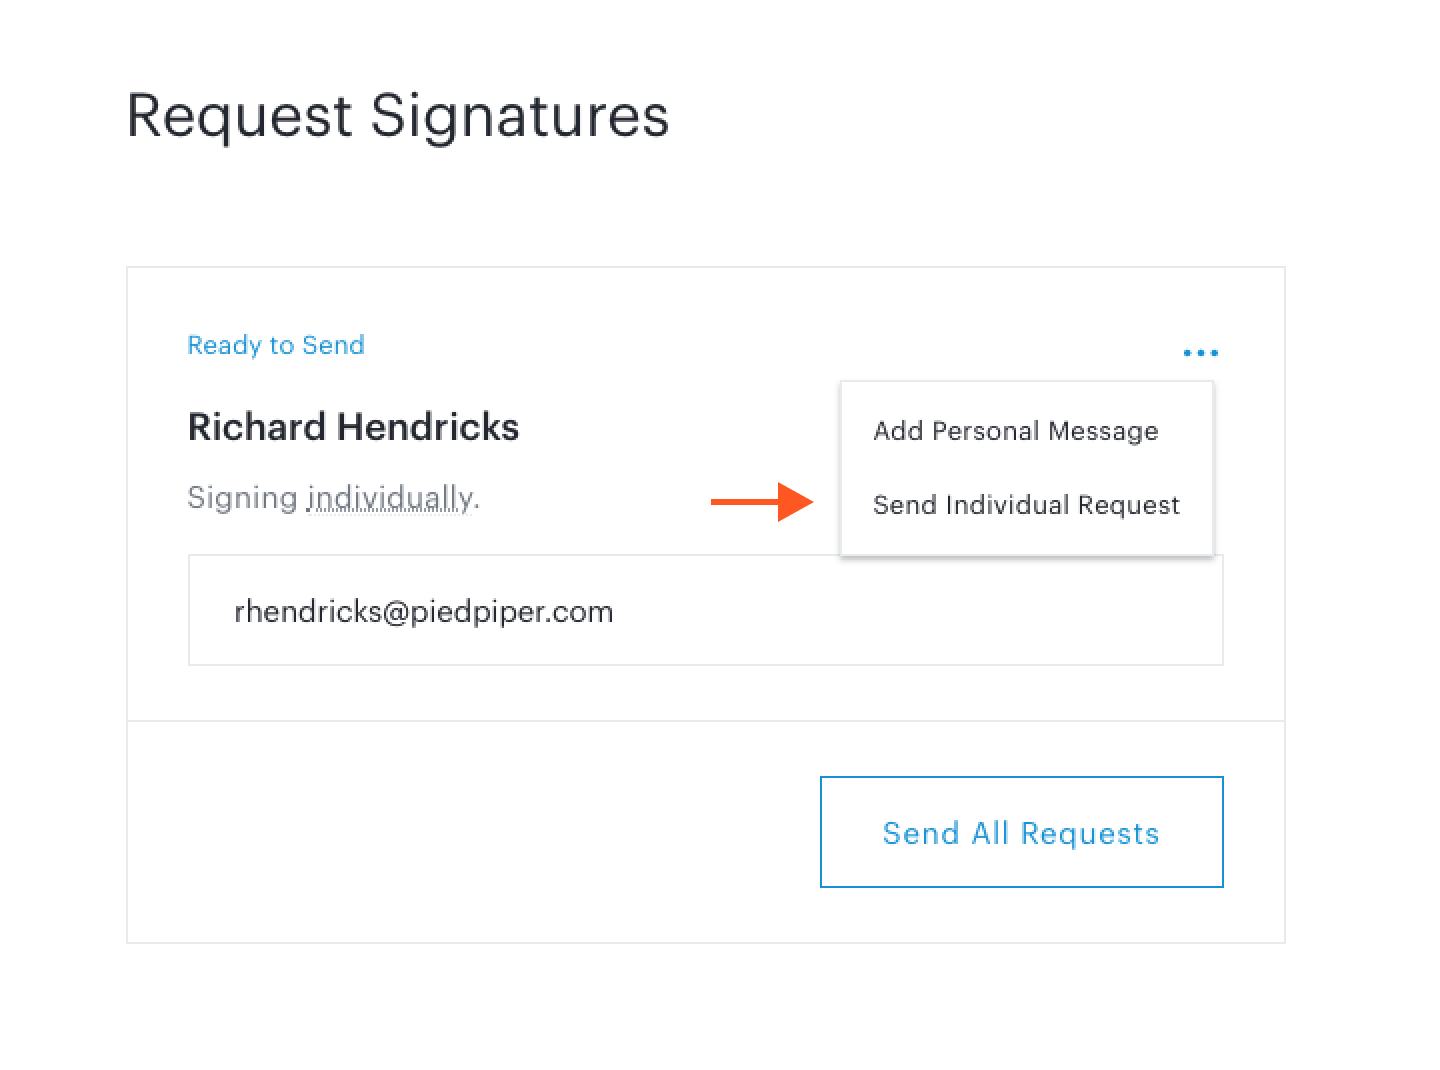 Send Individual Request button in Request Signatures step in document set workflow